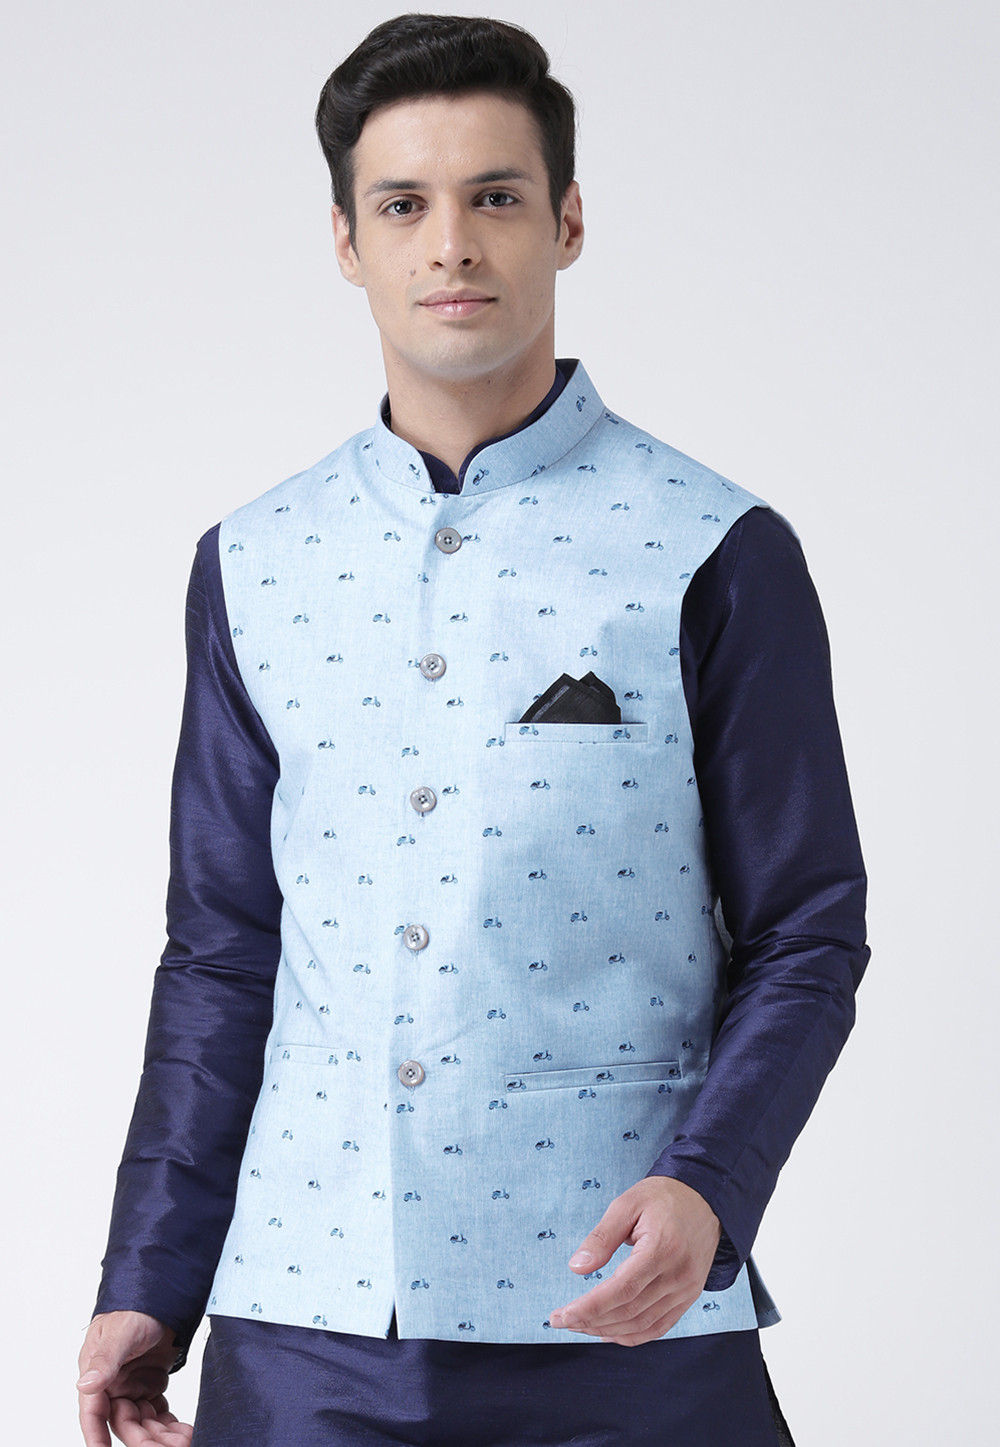 b561b1f11a7 ... Printed Cotton Linen Nehru Jacket in Light Blue. Zoom